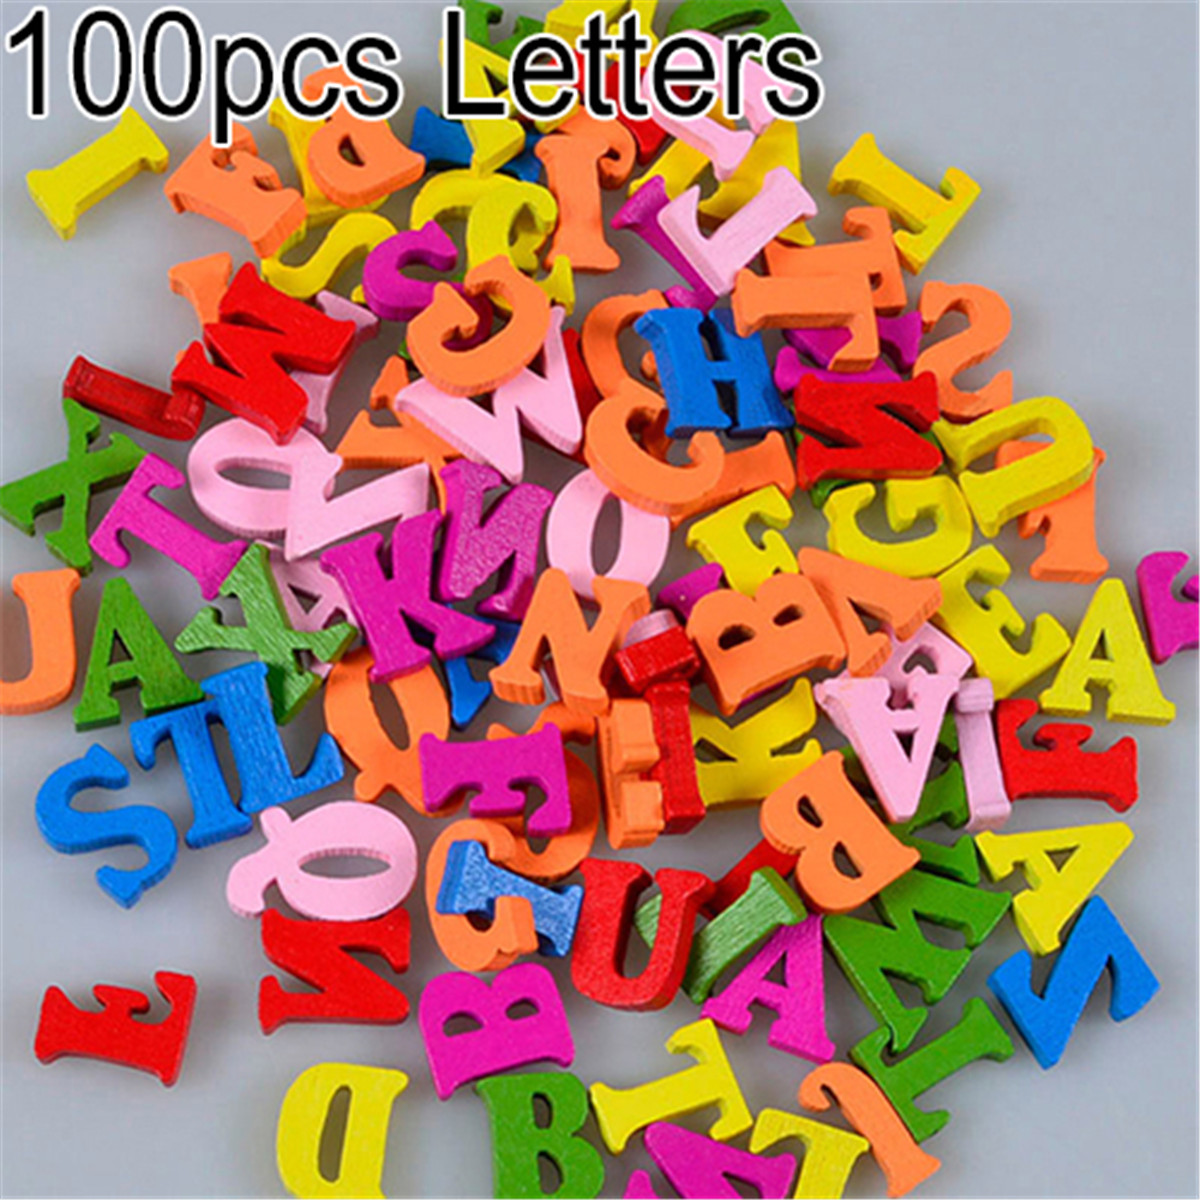 New Arrival 100Pcs Colorful Letters Numbers Wooden Flatback Embellishments Crafts Tool Kids Toys Baby Education